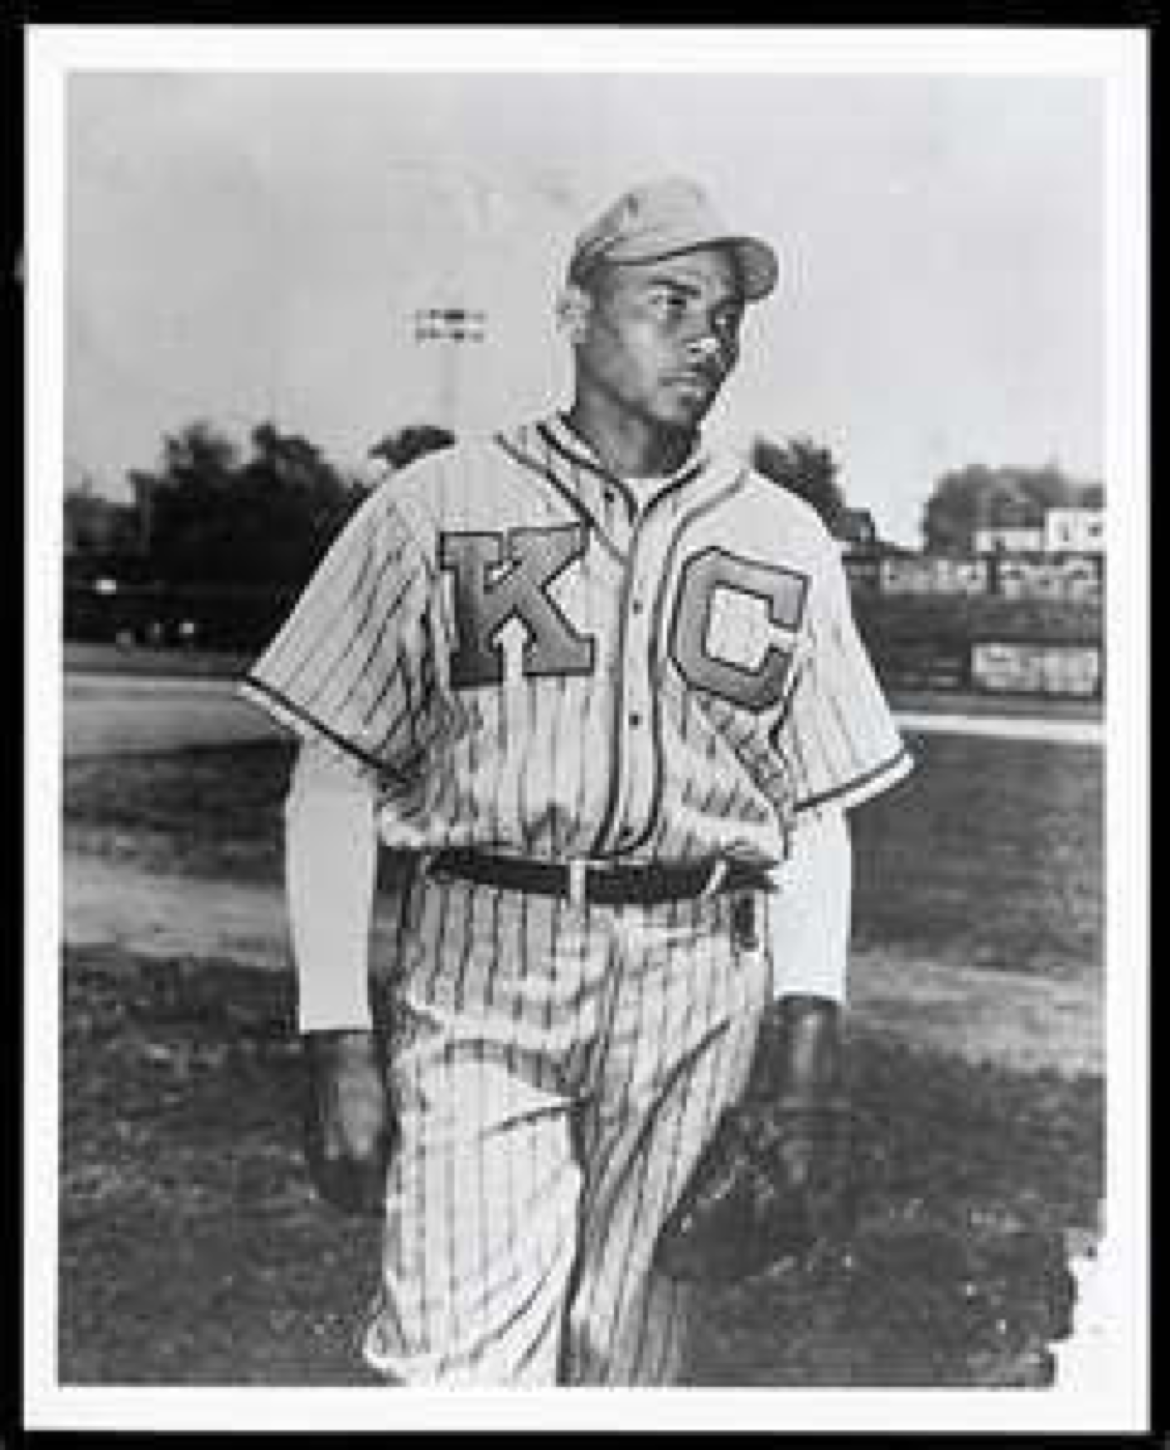 """""""Hilton Smith, besides being a great pitcher, could have played outfield with anybody. He could hit & boy, could he get you out!""""-S.Brewer"""